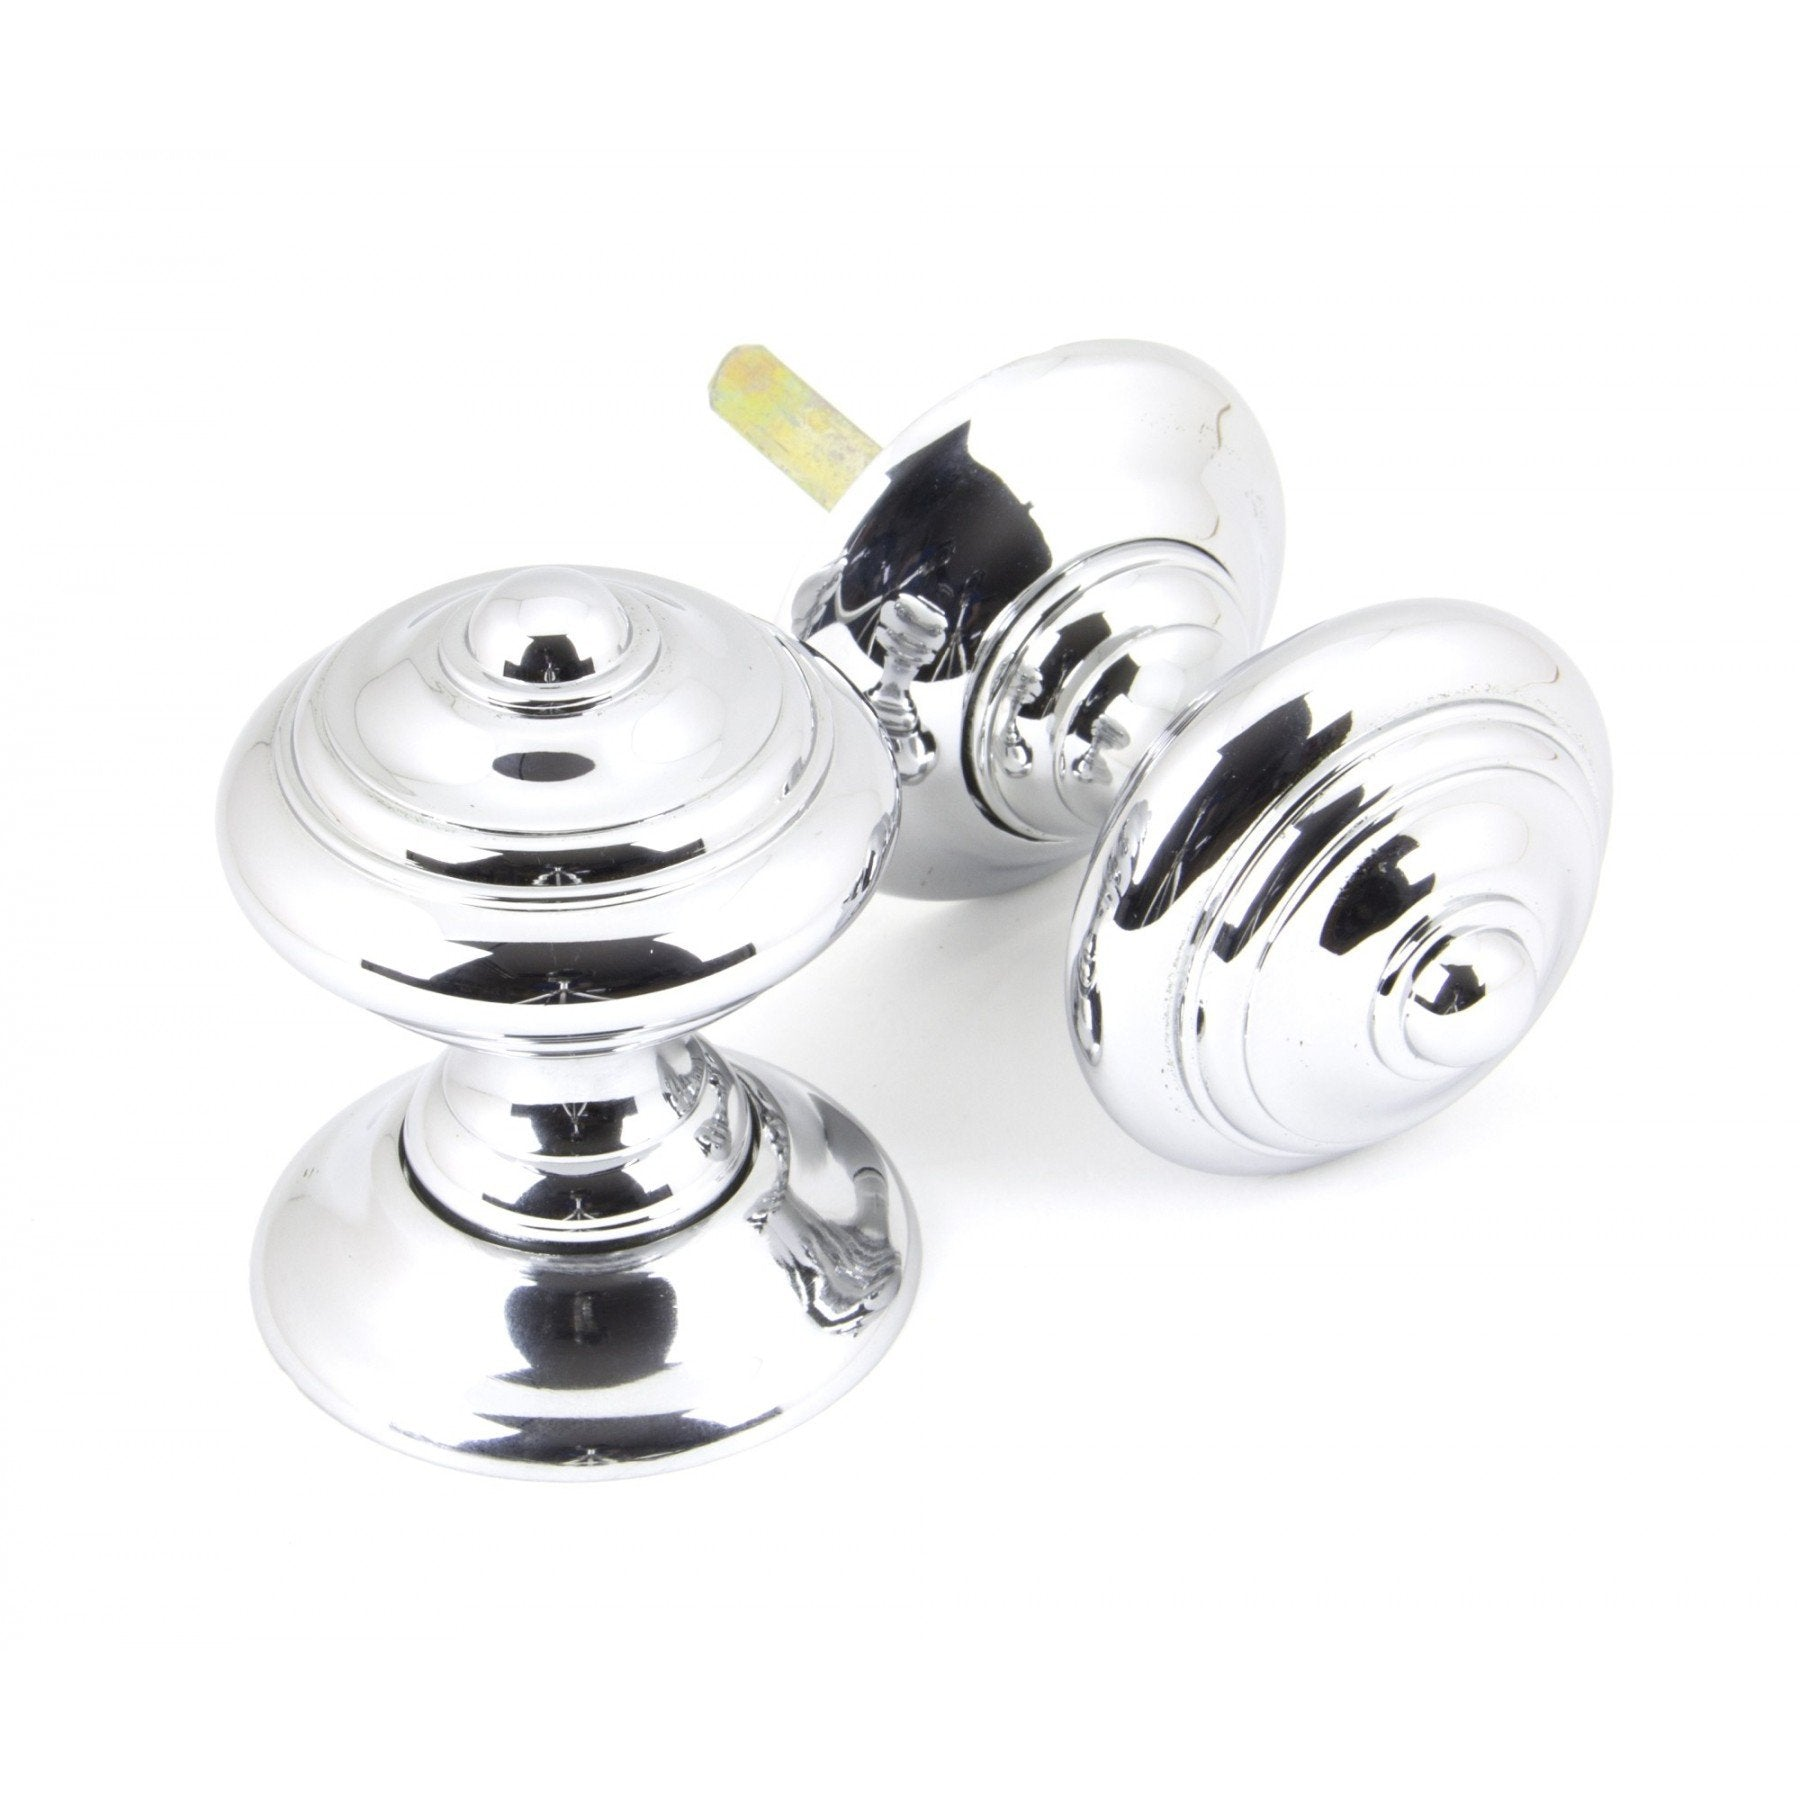 From the Anvil Polished Chrome Elmore Concealed Mortice Knob Set